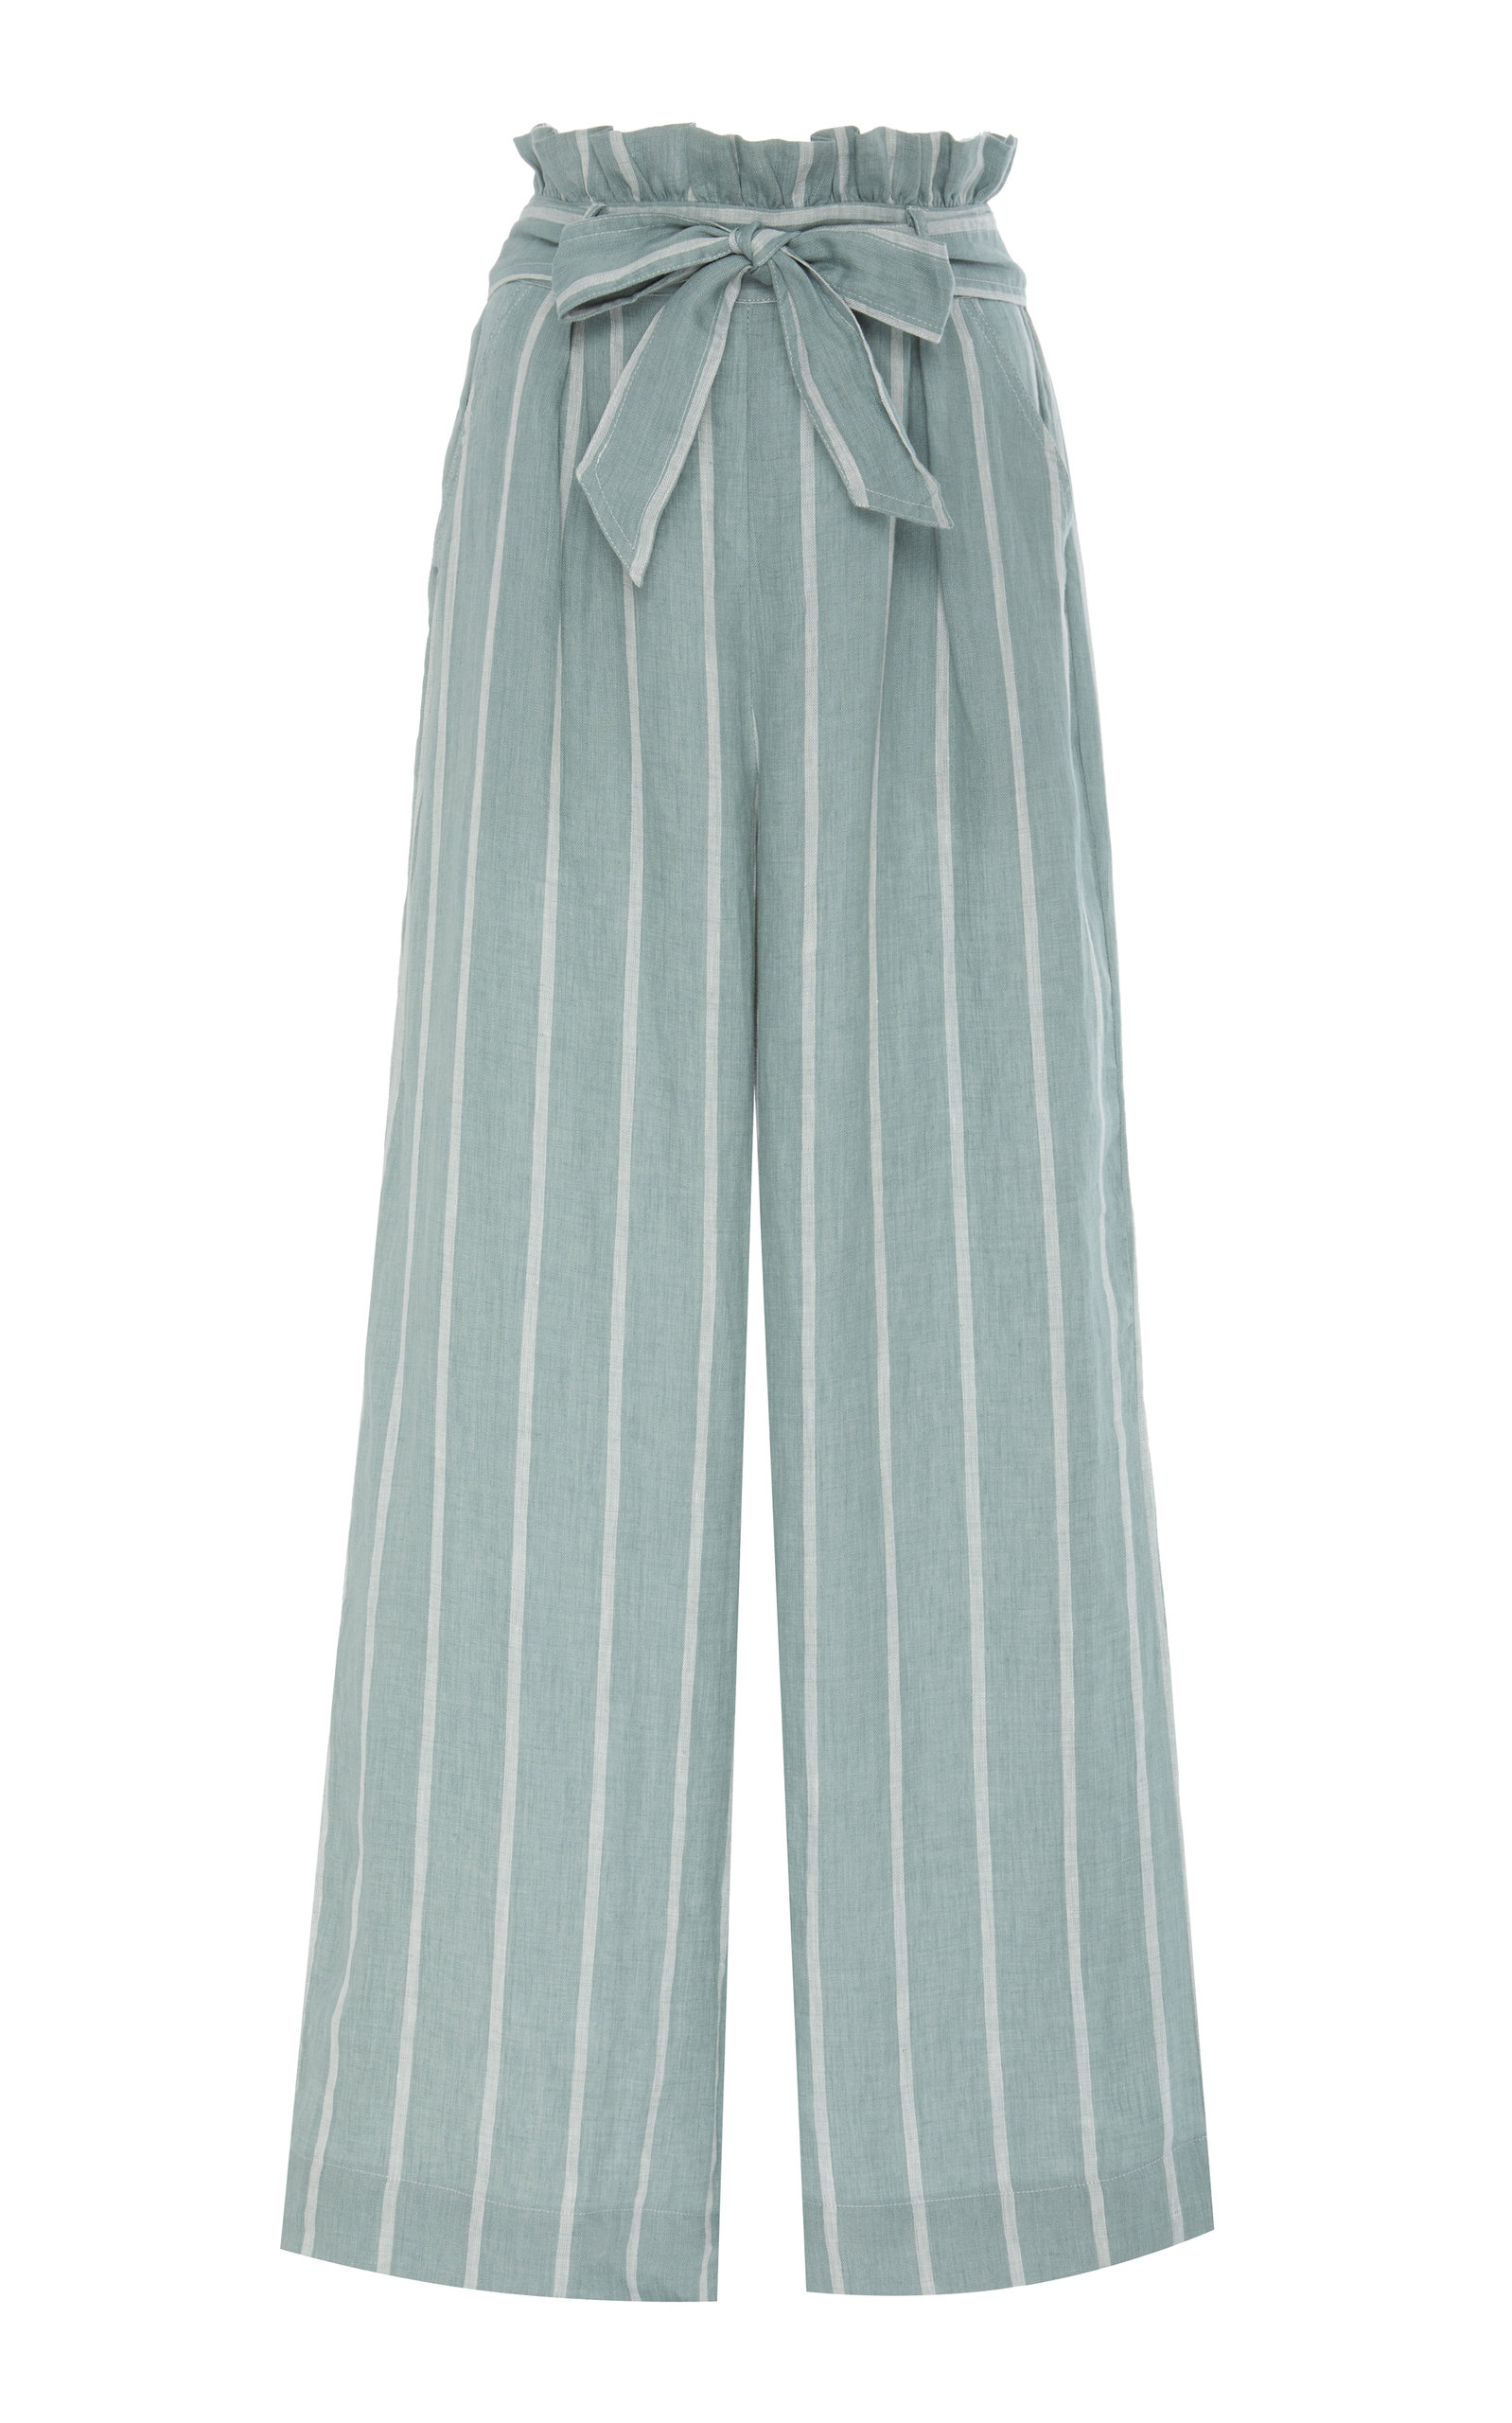 SUBOO Horizon Wide Leg Pants in Blue